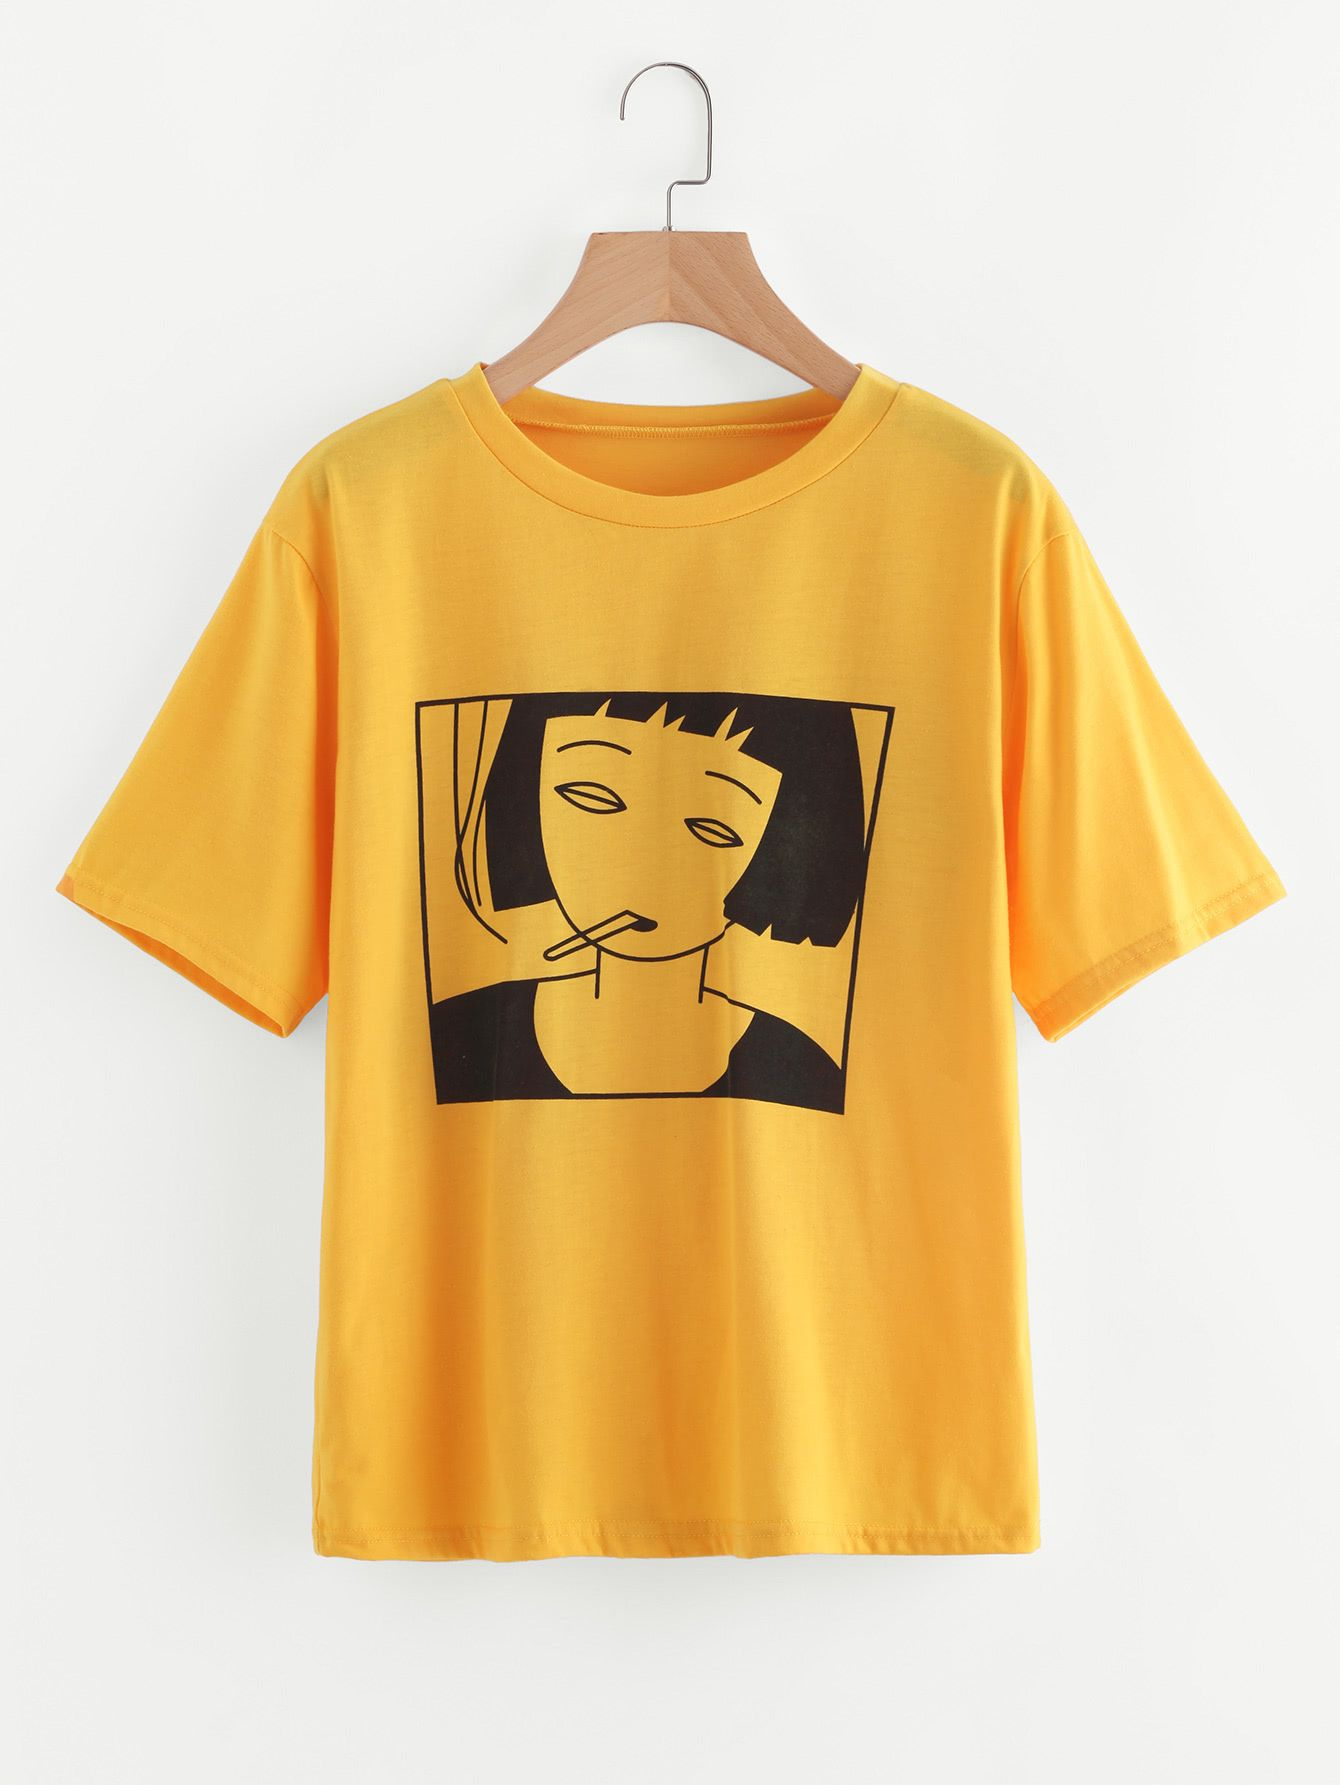 2278b6a53 Shop Girl Print Tee online. SheIn offers Girl Print Tee & more to fit